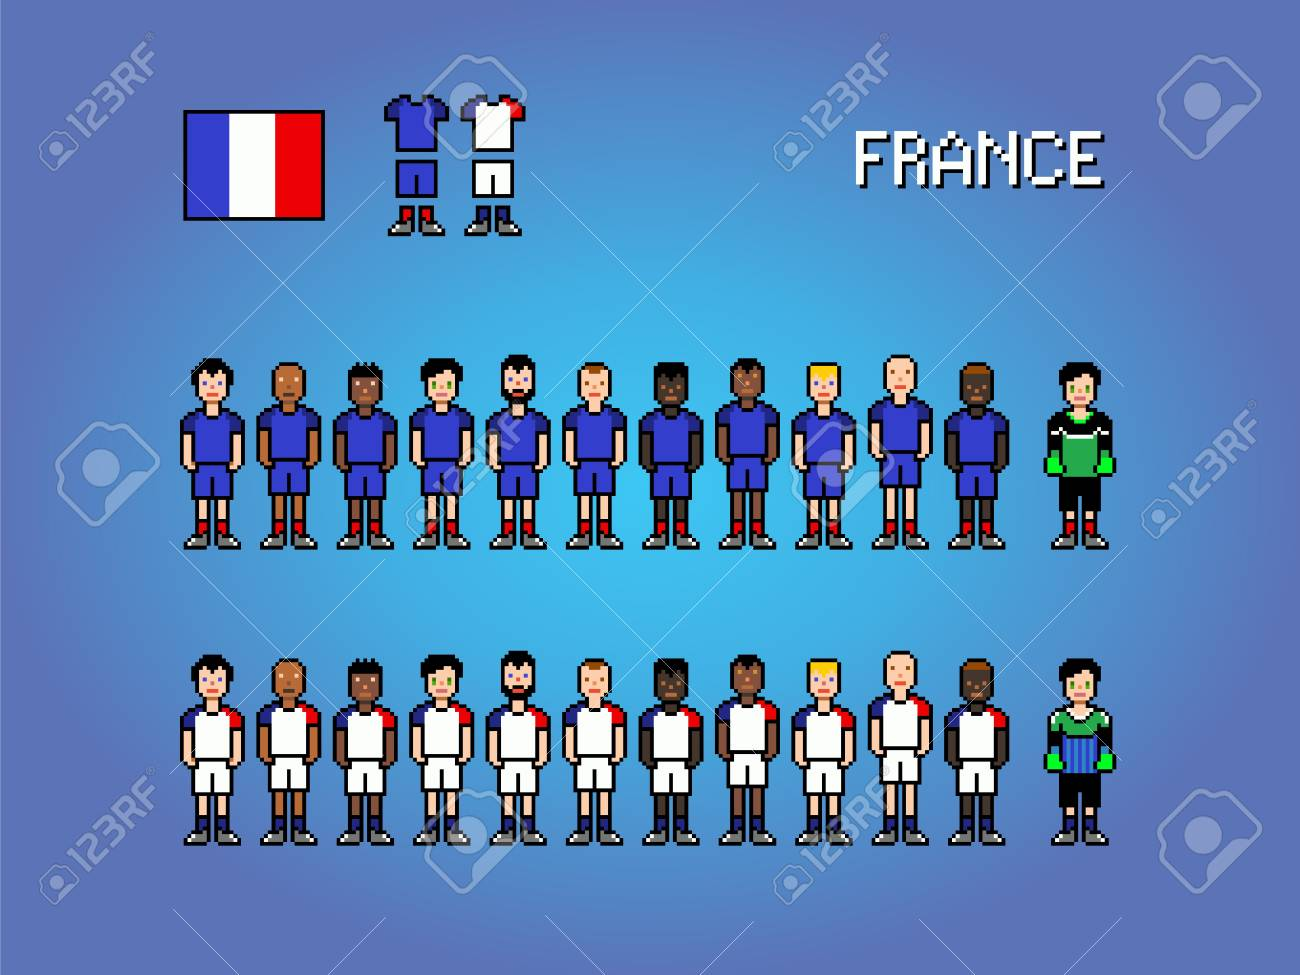 France National Football Team Pixel Art Video Game Illustration